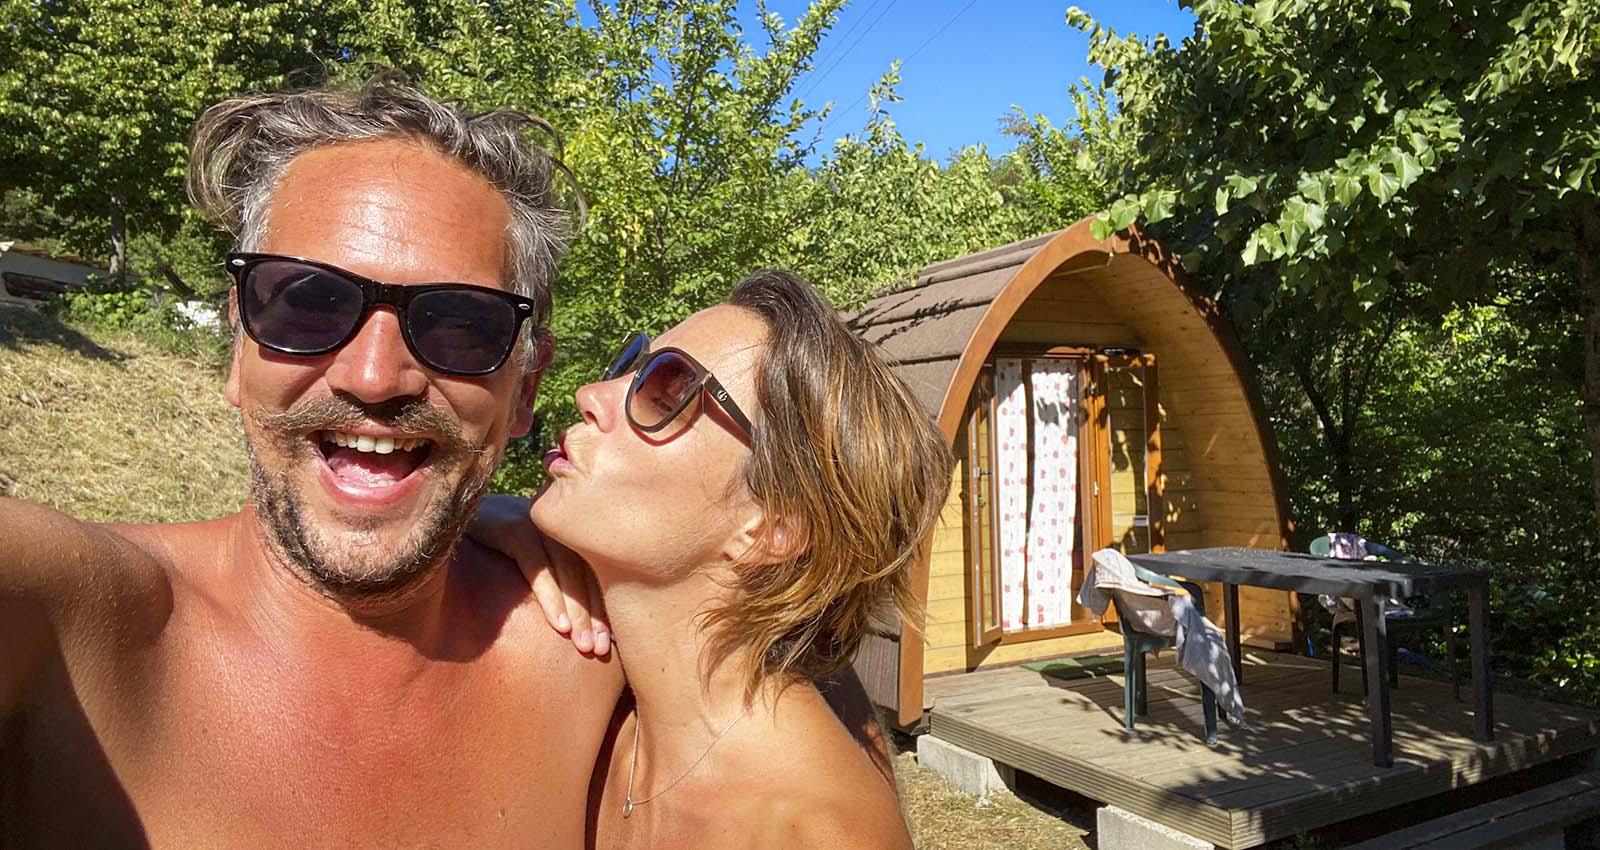 Our Naturist Road Trip in Italy in 2021